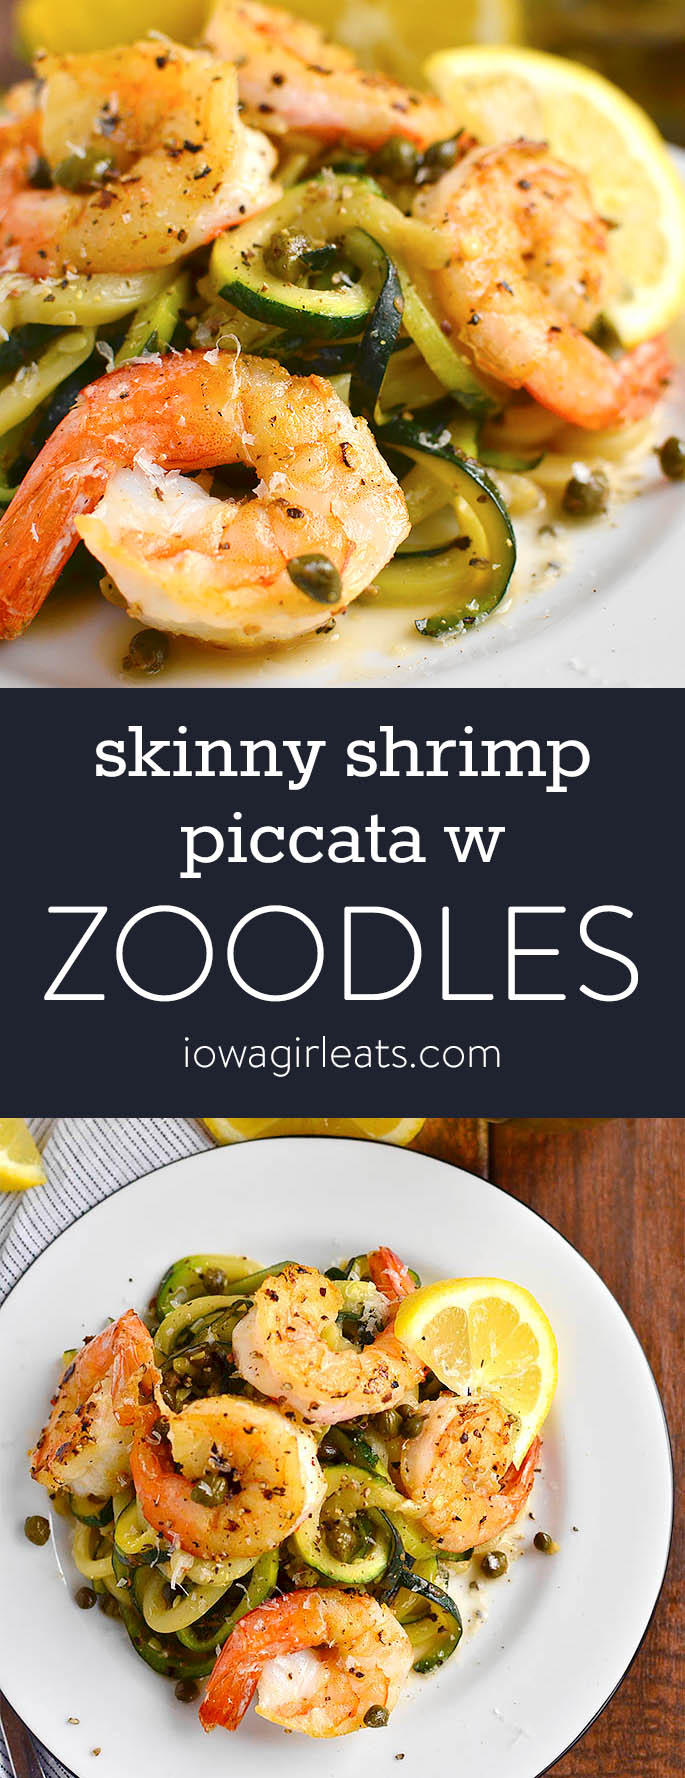 Photo collage of skinny shrimp piccata with zoodles